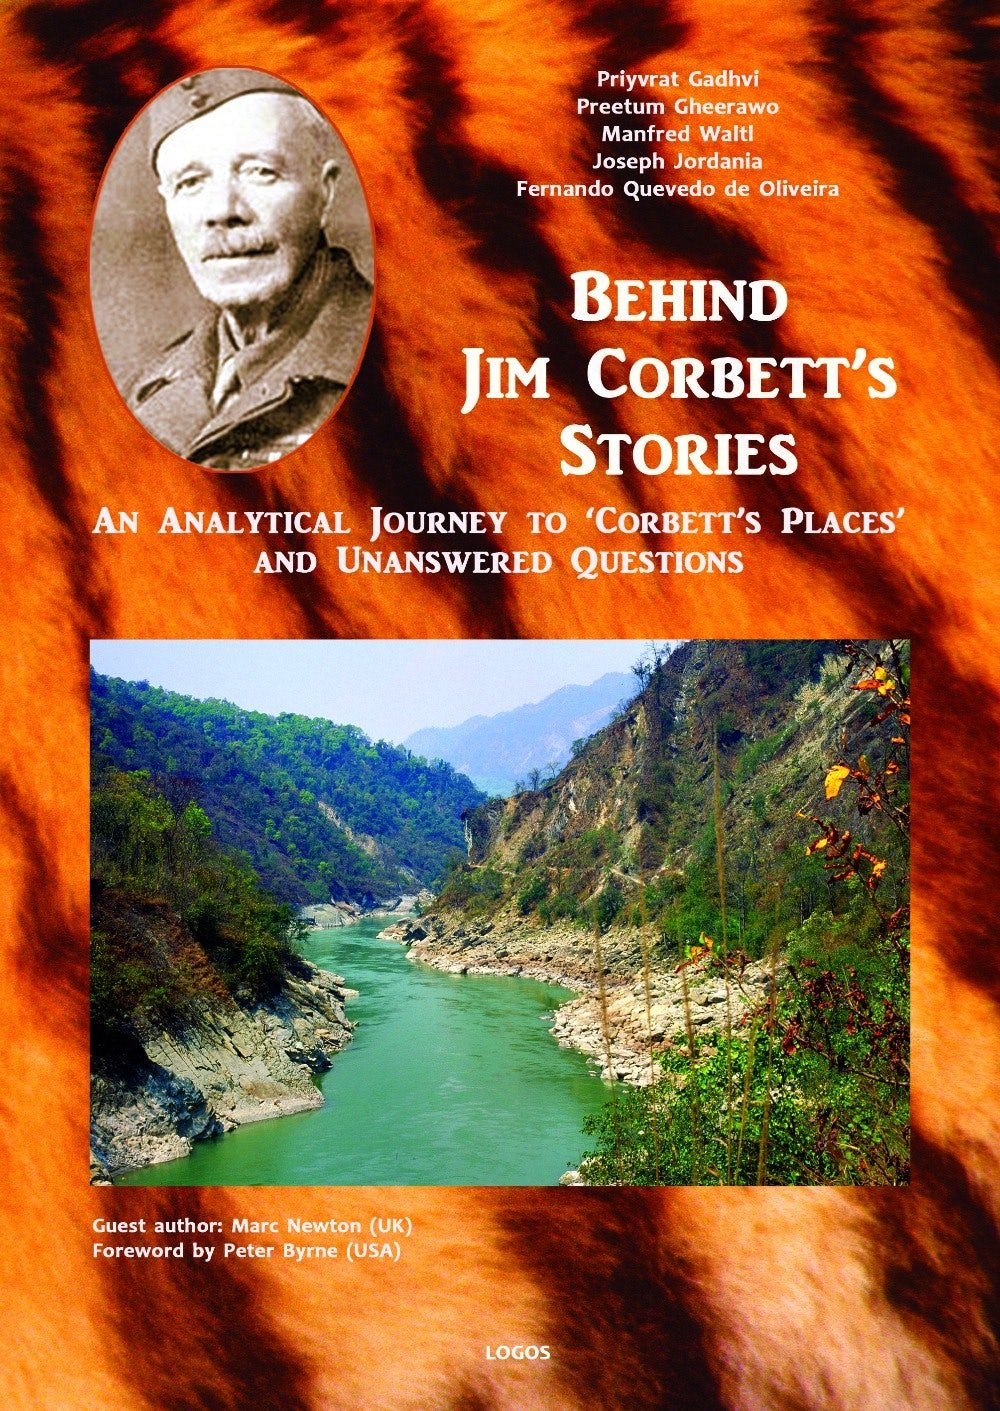 ebook-Behind Jim Corbett's Stories:Analytical Journey to 'Corbett's Places' and Unanswered Questions